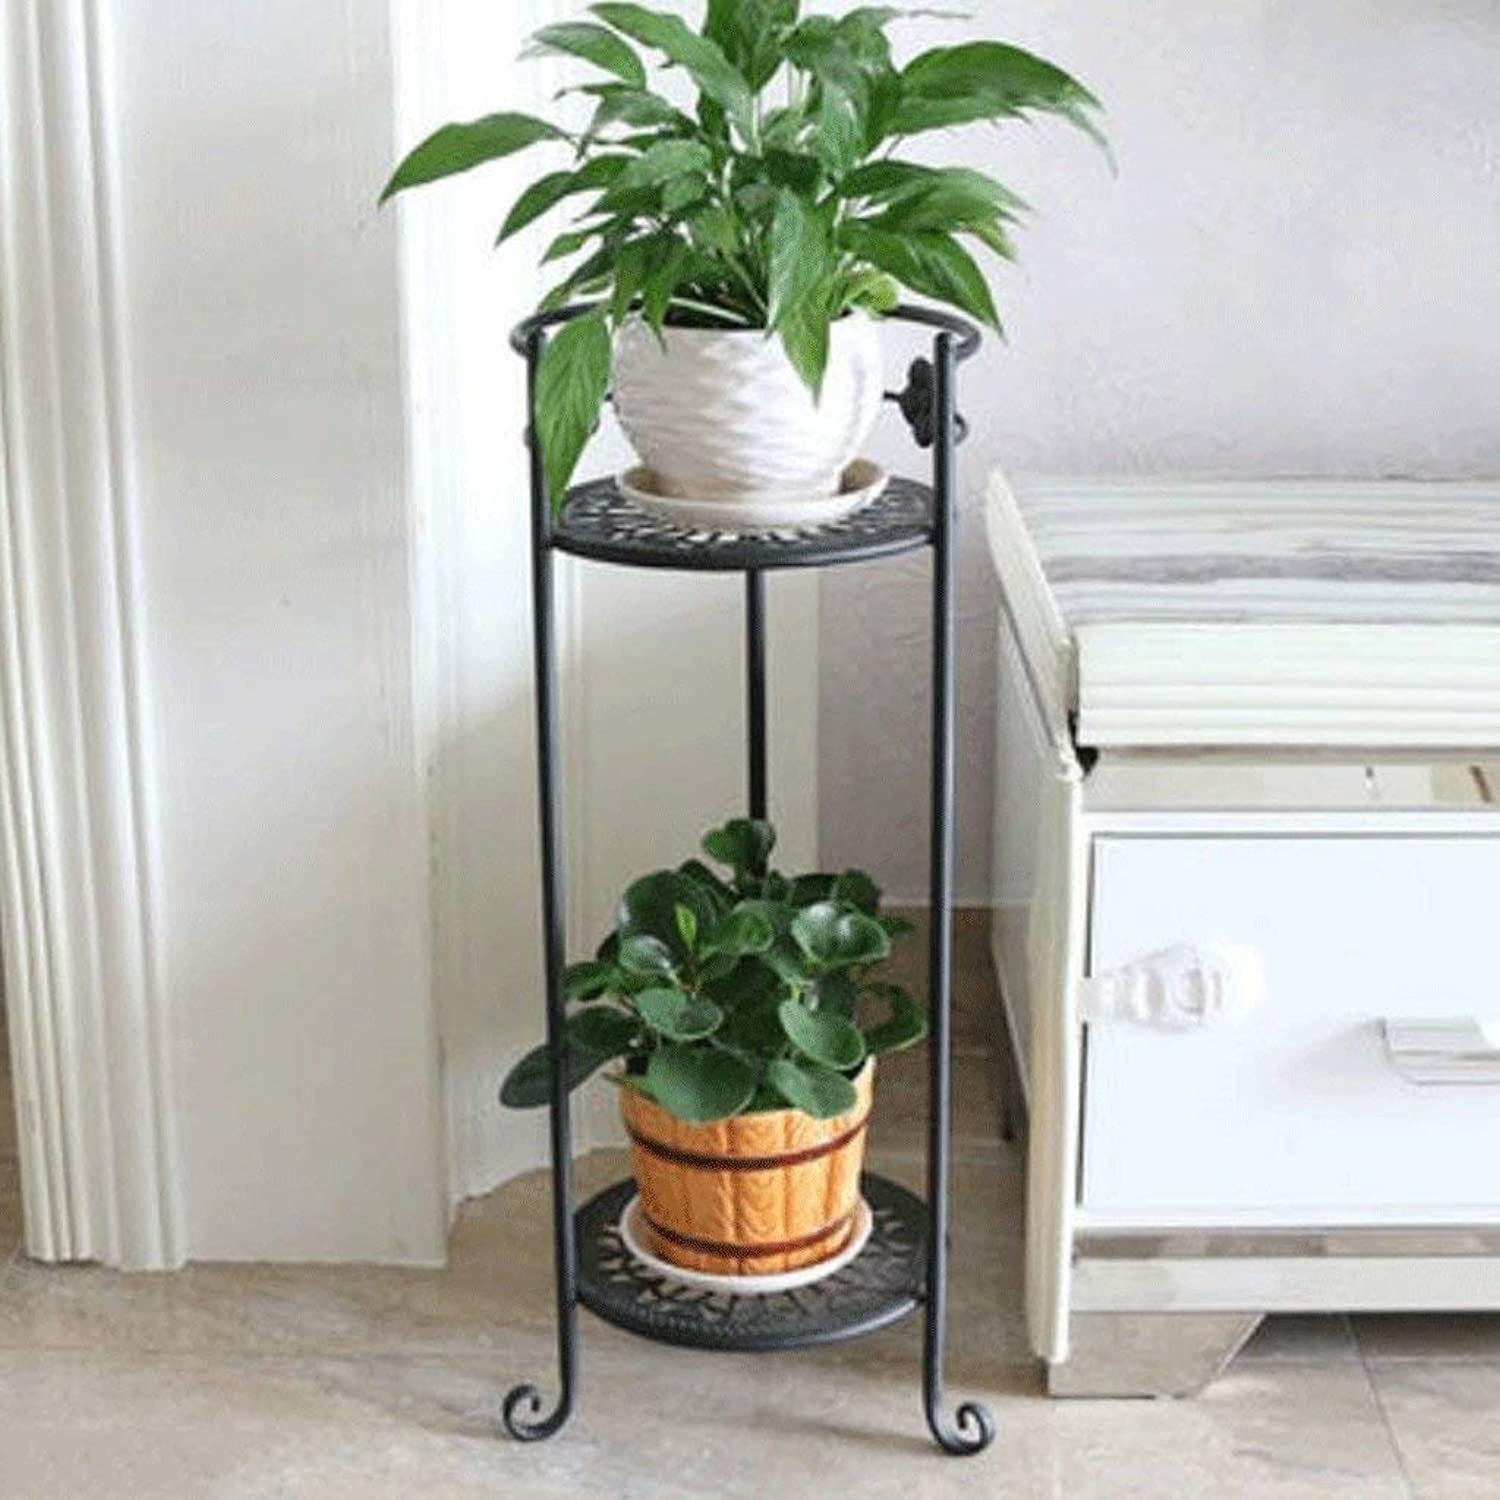 Gifts & Decor Plant Stand Shelf Flower Racks European Style Balcony Flower Frame Multiple Layers Living Room Interior Flower Flower Pot Rack Plant Shelf (color   A, Size   Three)